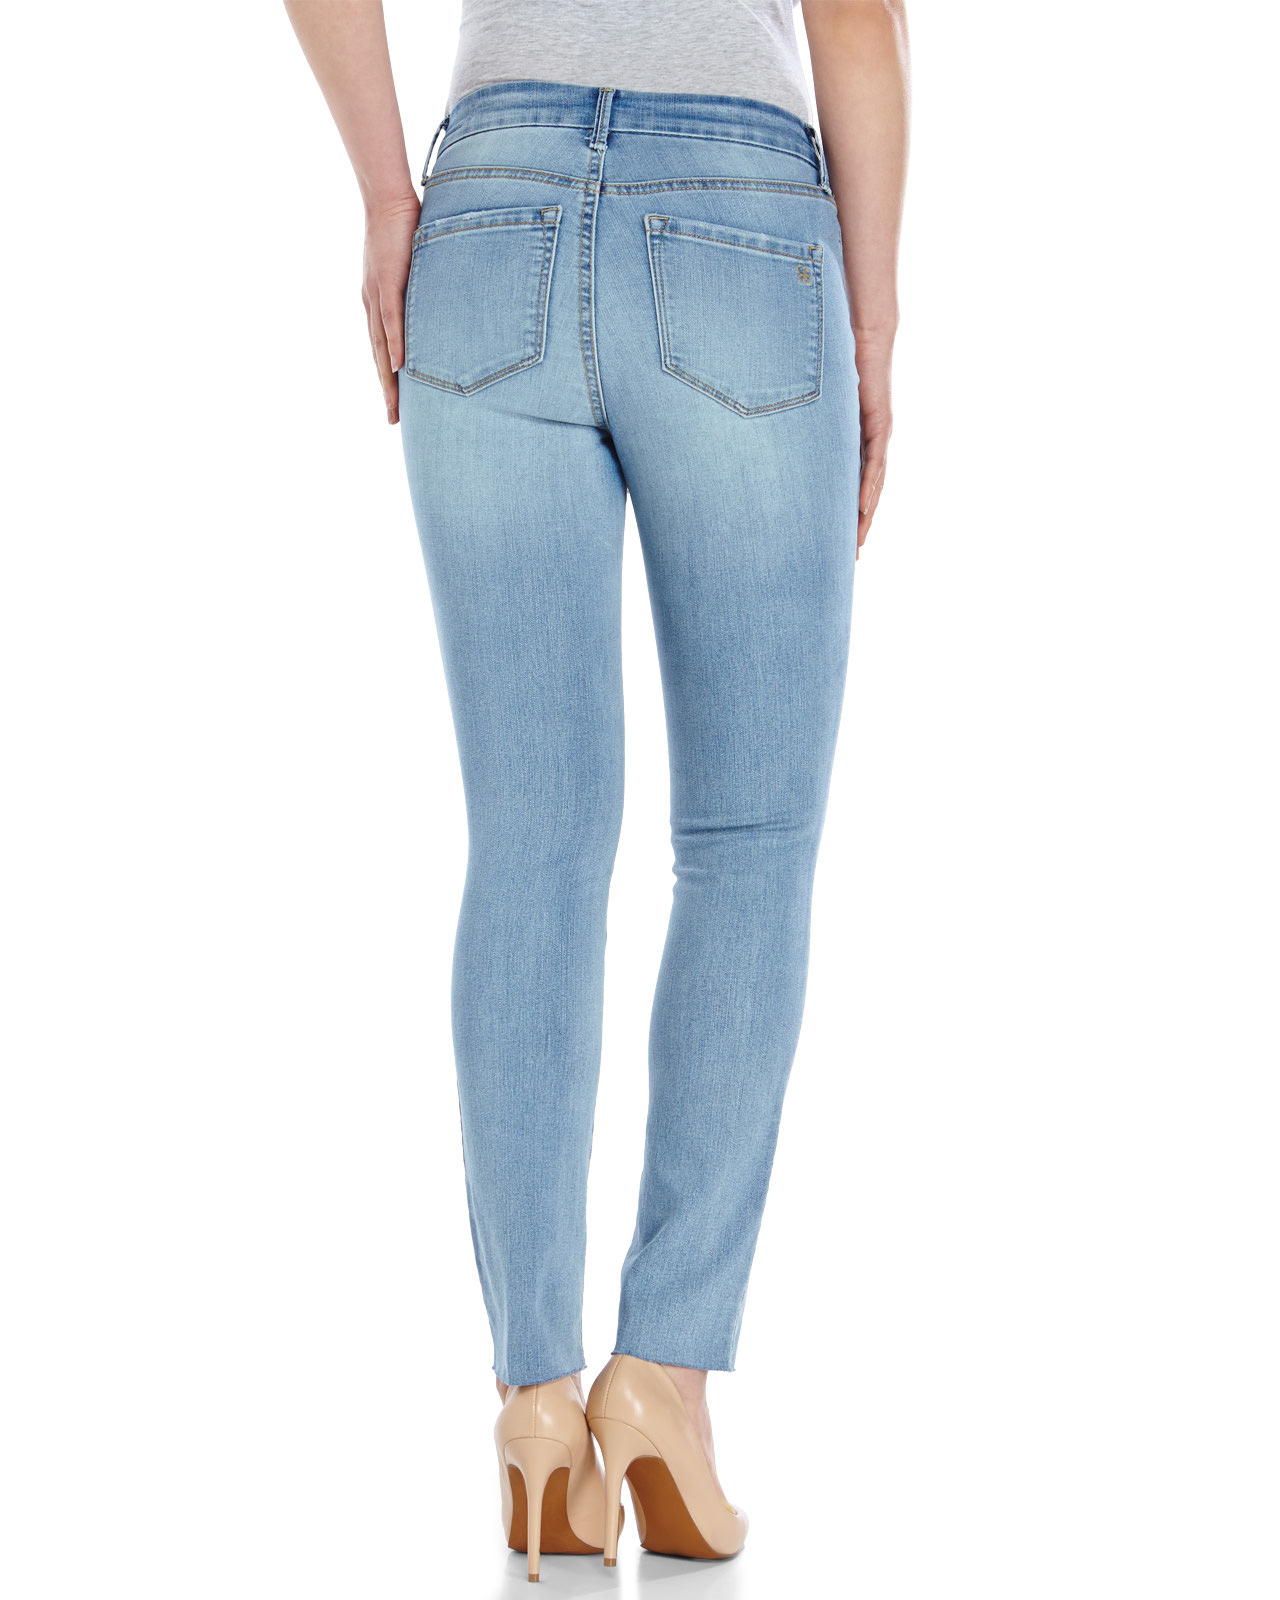 0c9f0692e18be Lyst - Jessica Simpson Uptown High Rise Jeans in Blue